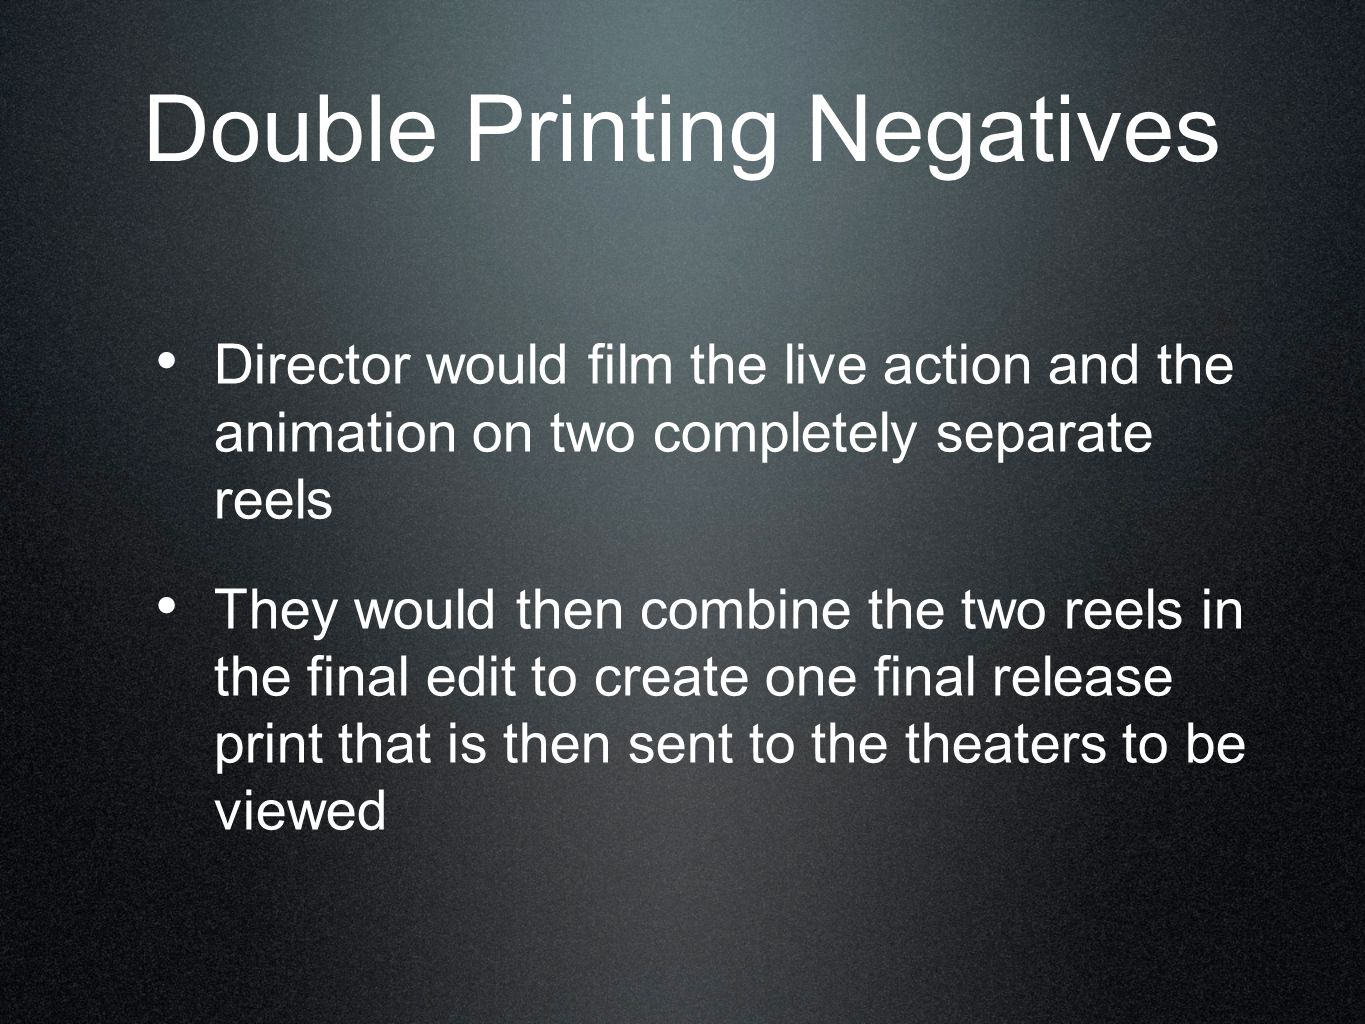 Double Printing Negatives